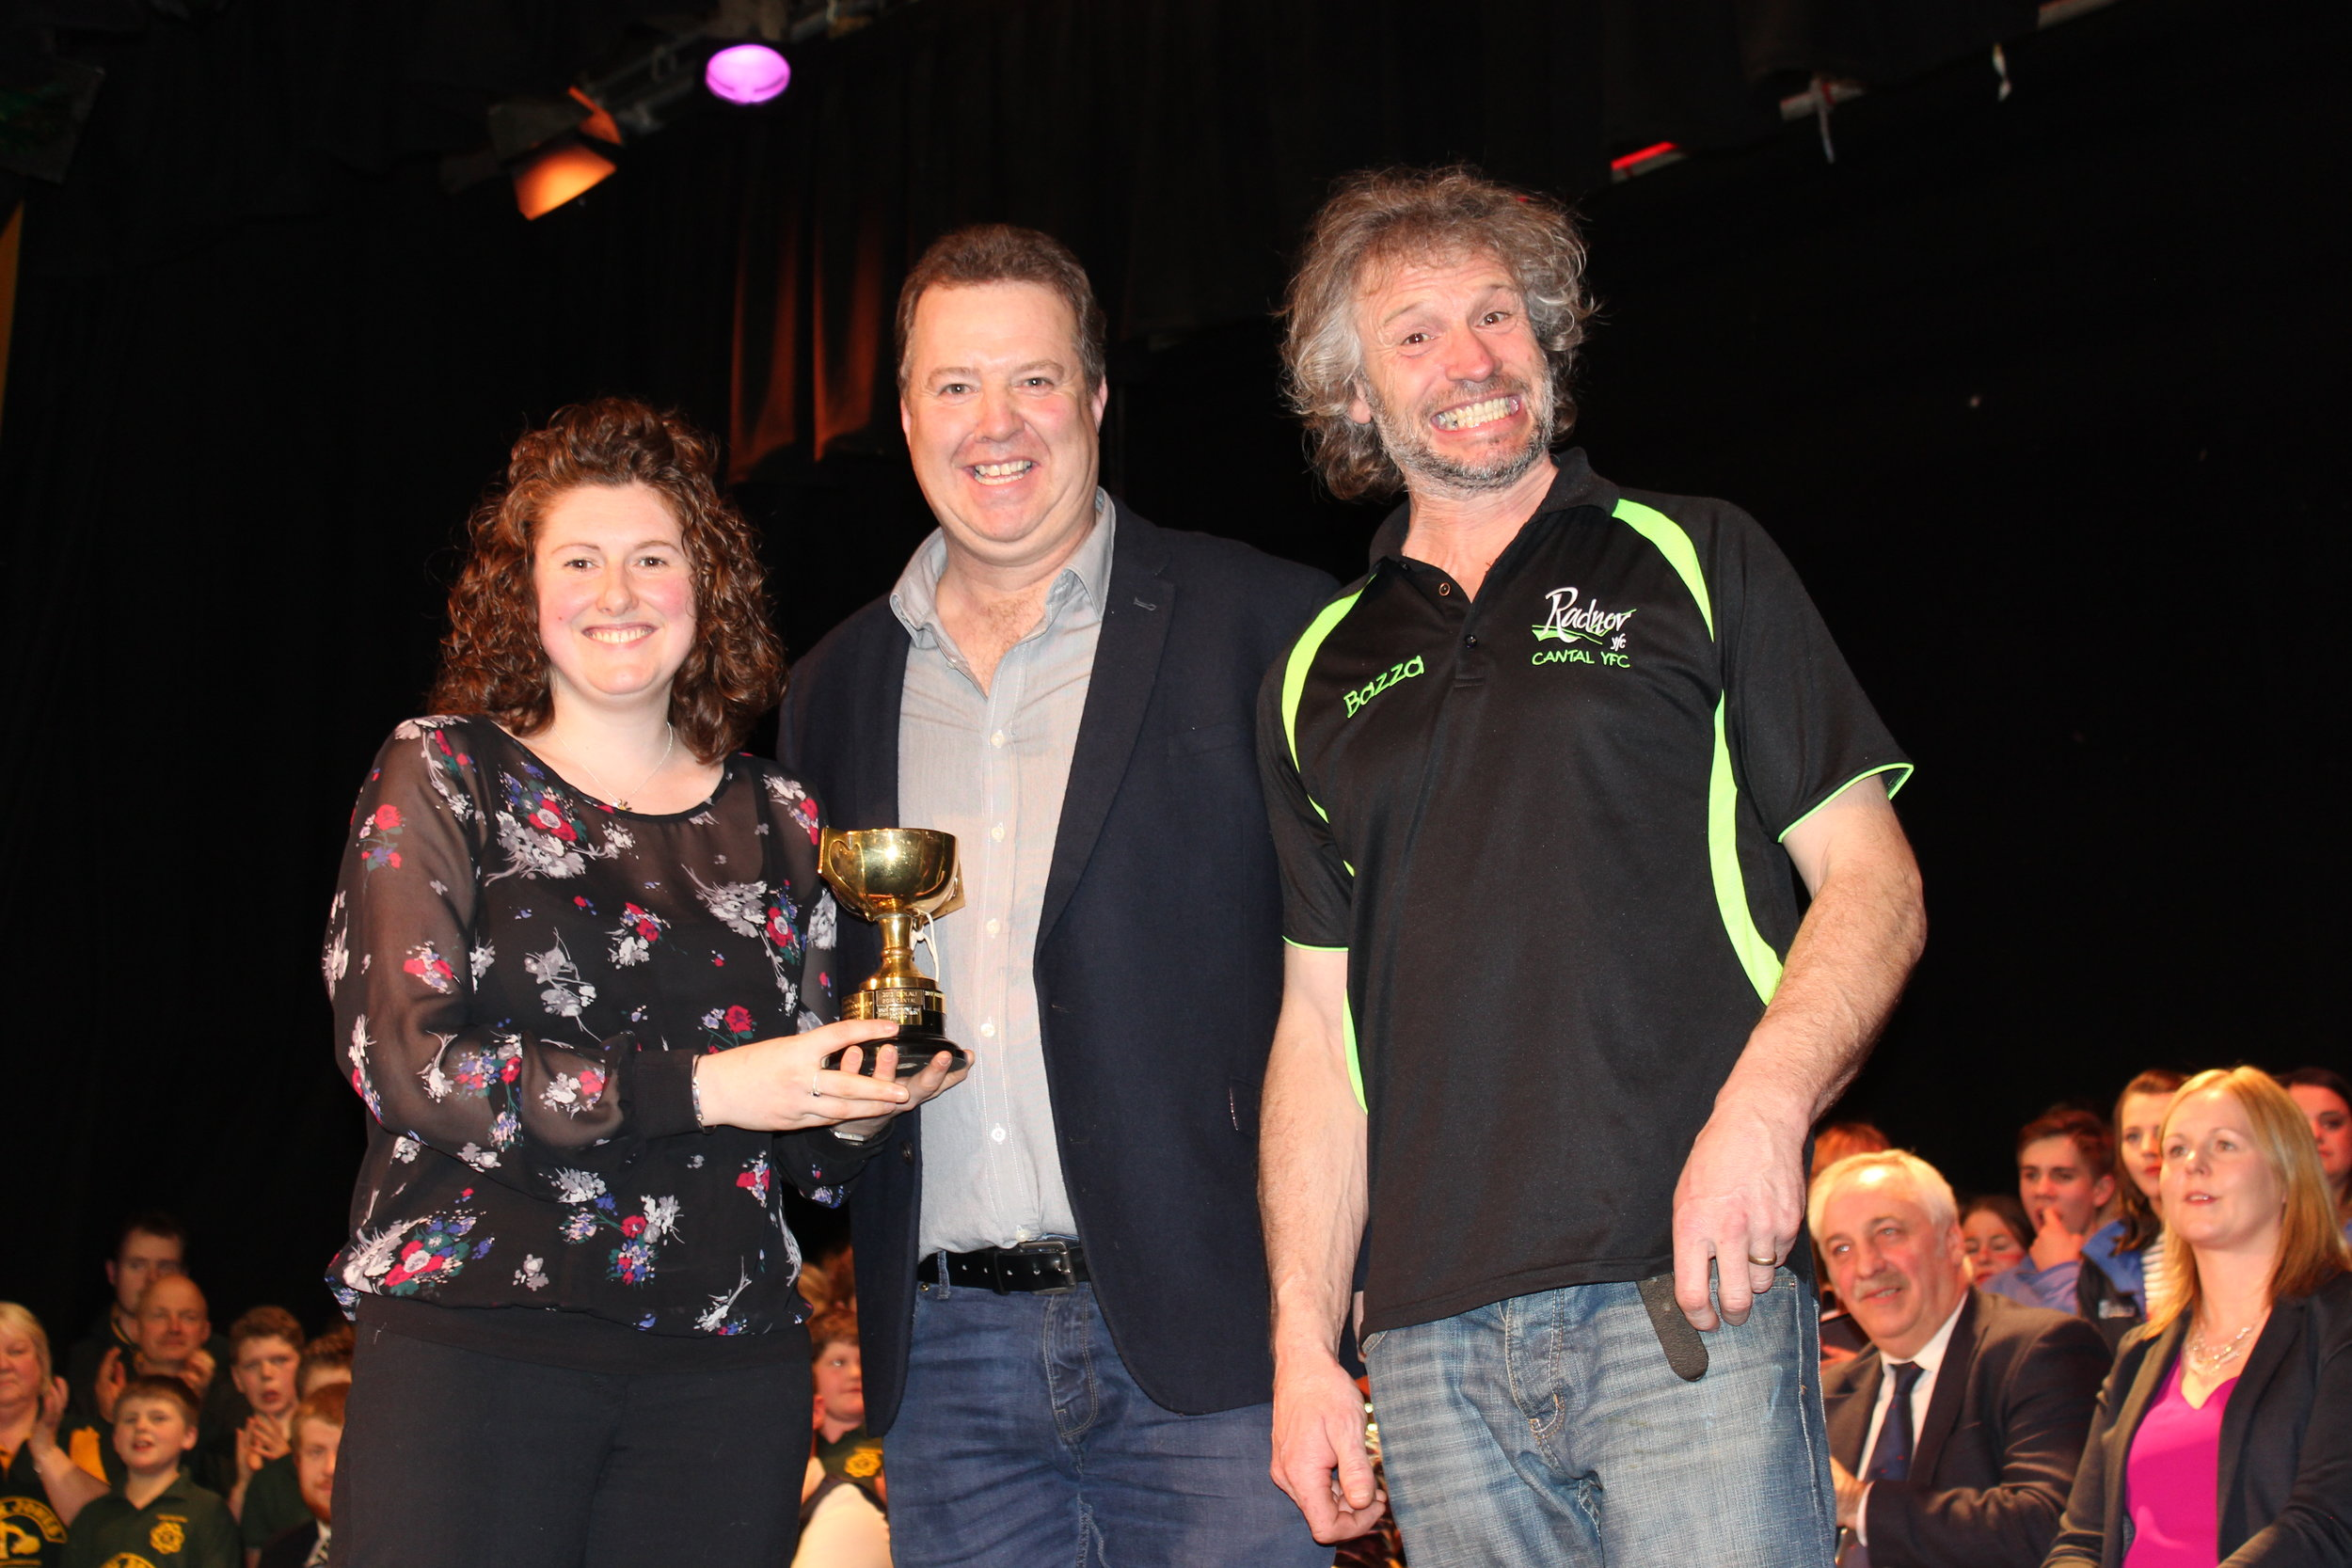 Gareth Rees & Barry Bevan, Cantal YFC being presented the 'Tom Hooson Cup' for highest placed small Club by Avril Hardwick, Barclays